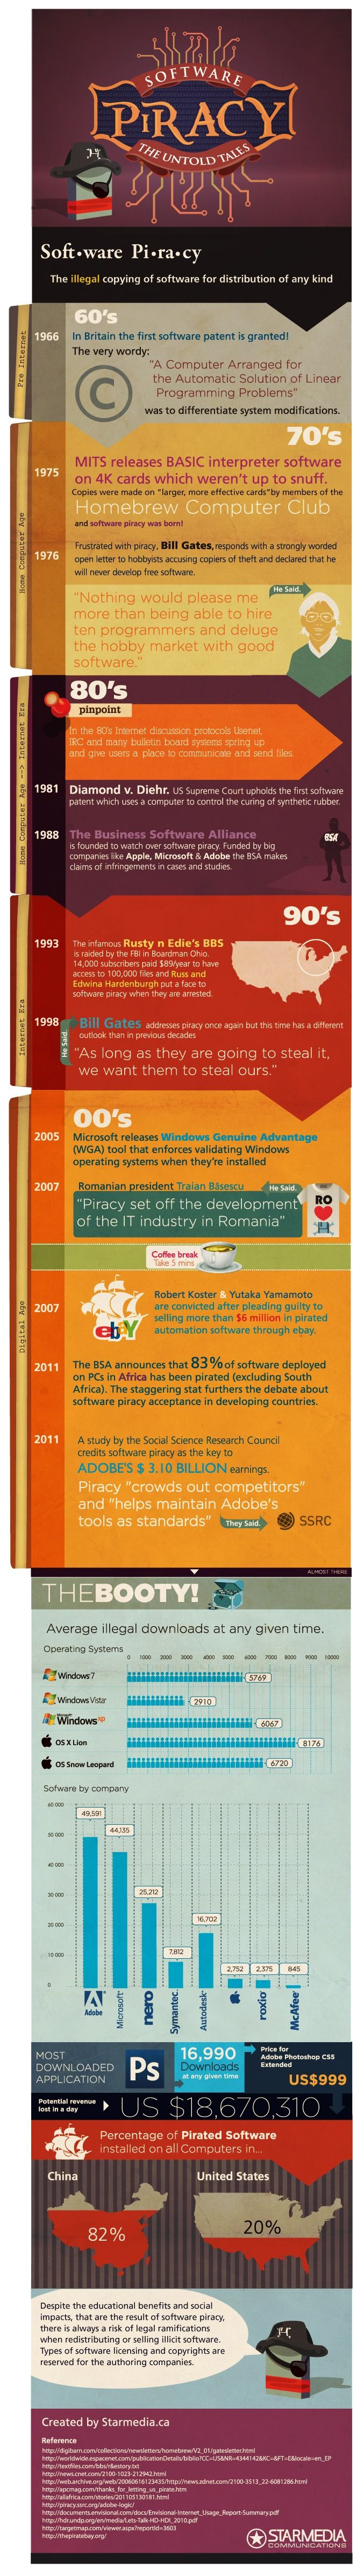 Software Piracy - The Untold Tales [INFOGRAPHIC] softwarepiracytalesjpg ok